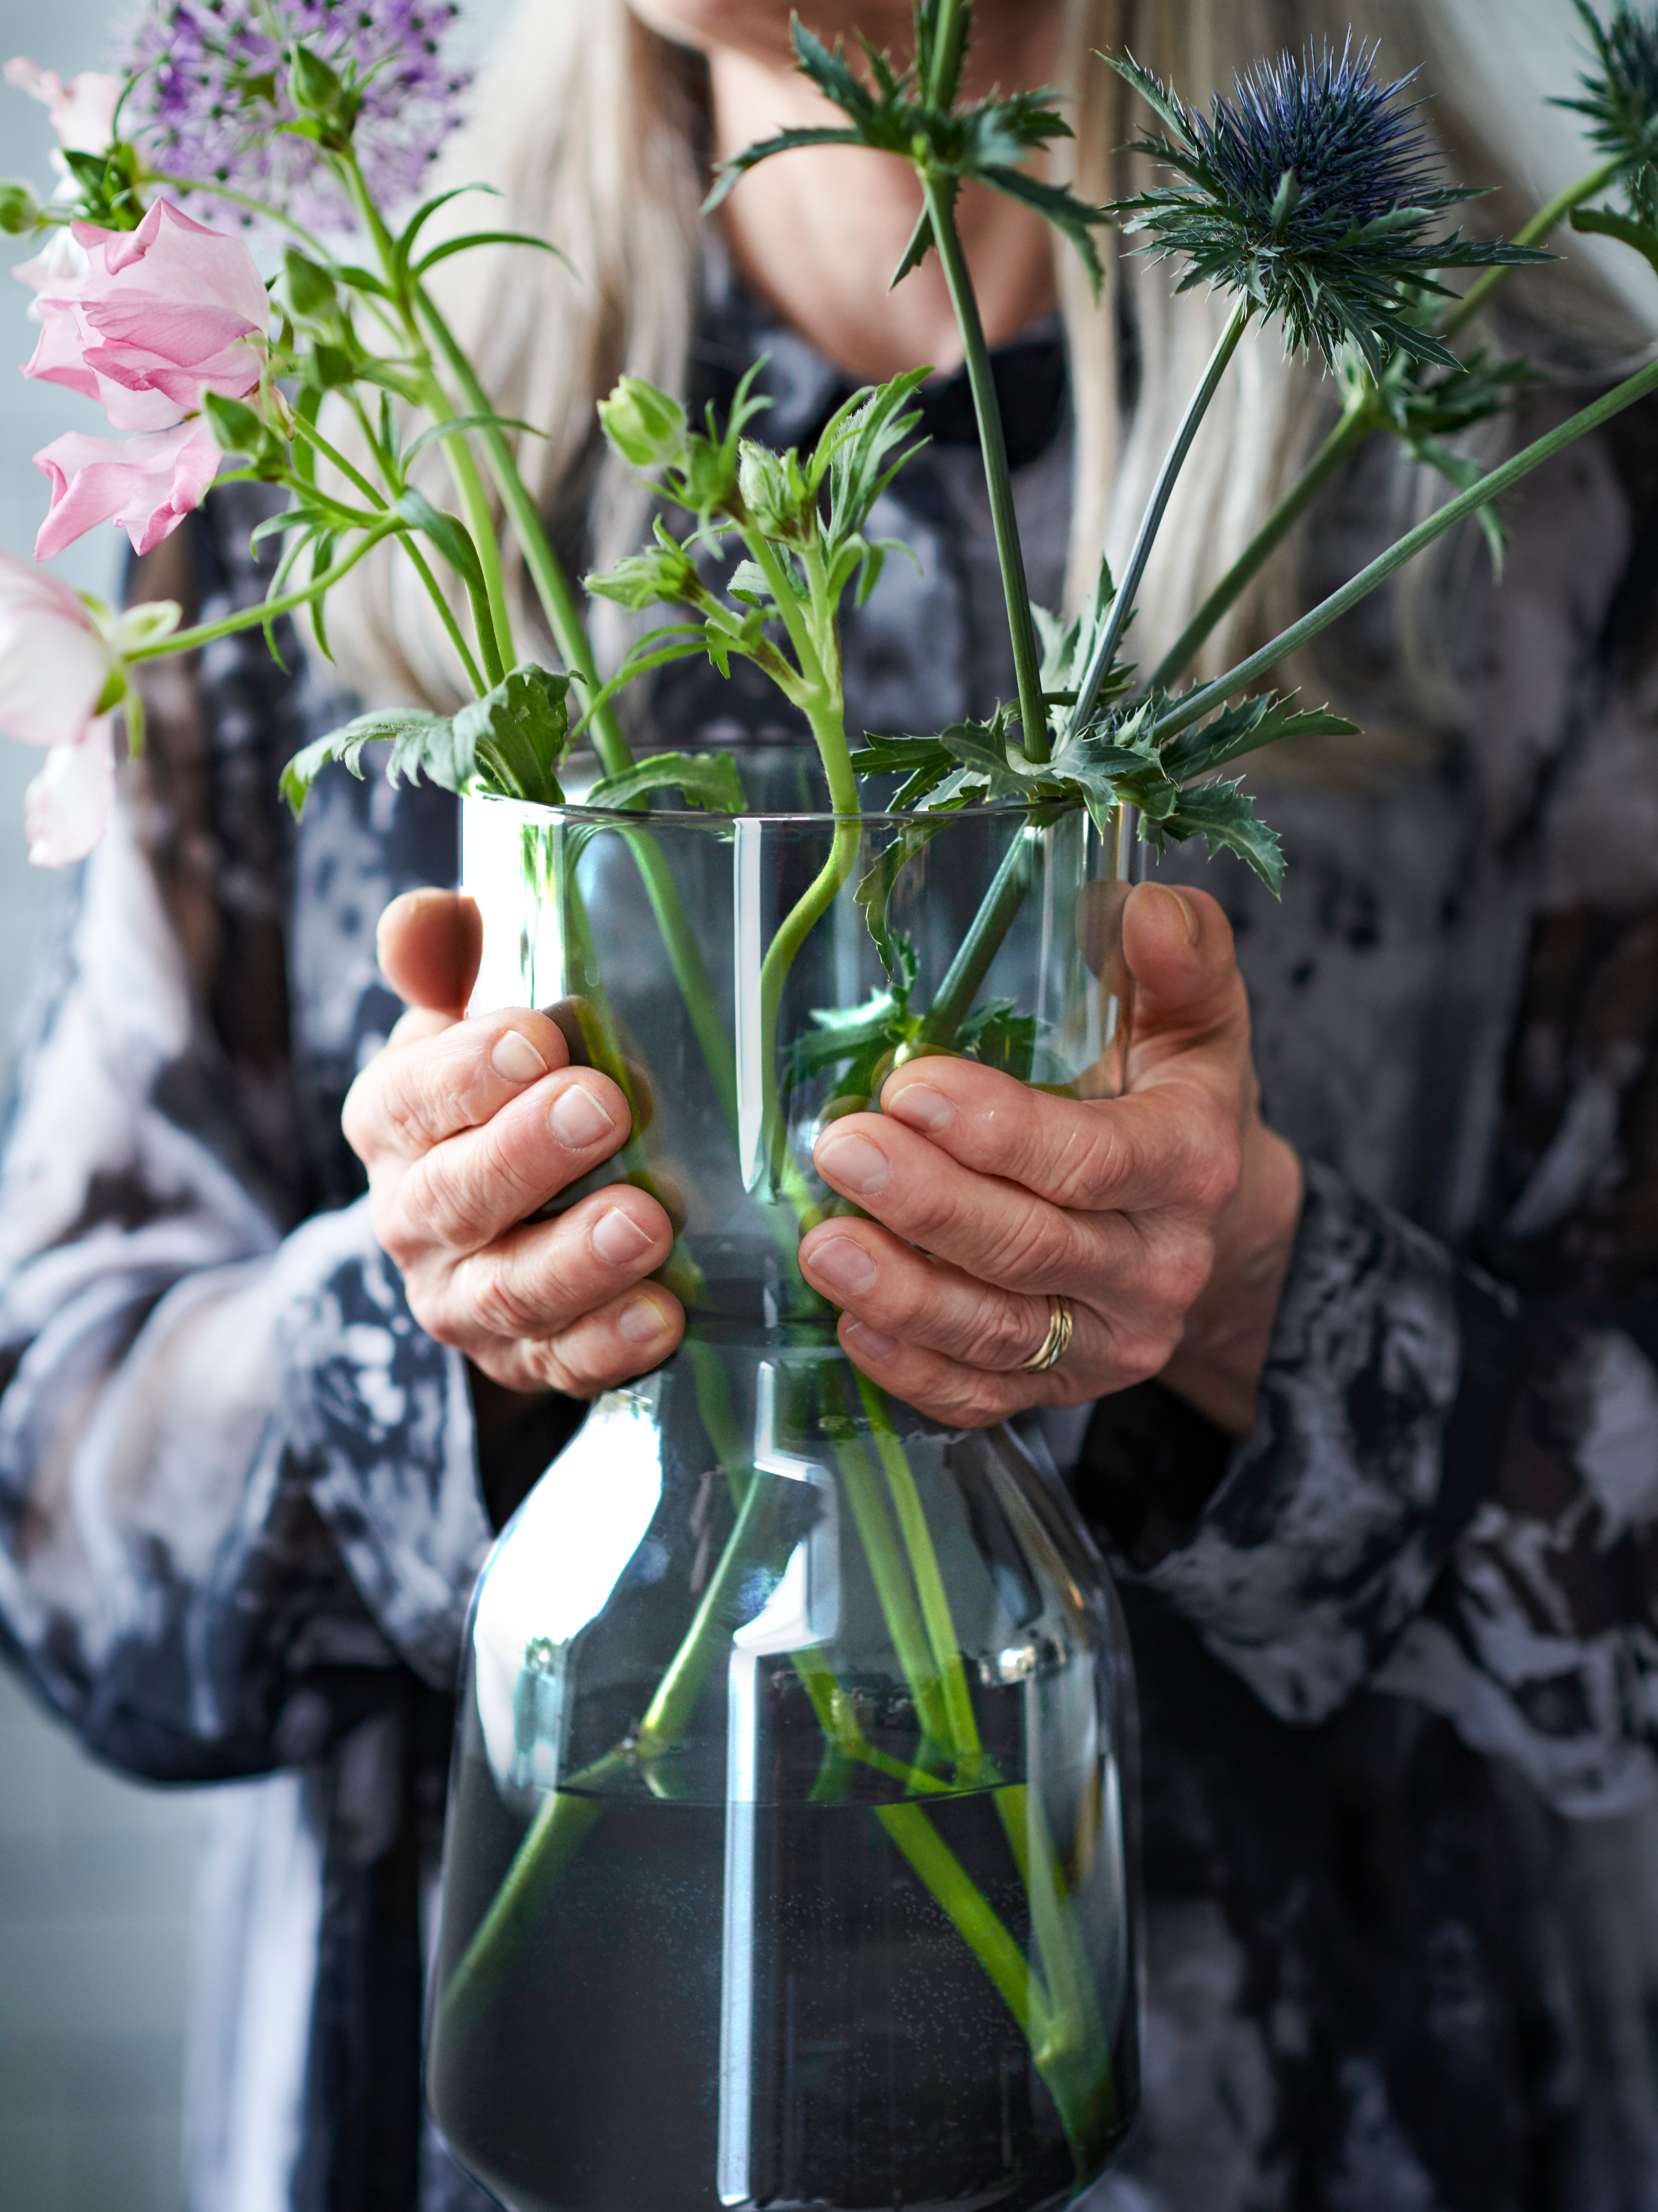 A person wearing a gold wedding band holds the wide waist of a light grey OMTÄNKSAM glass vase with fresh flowers.